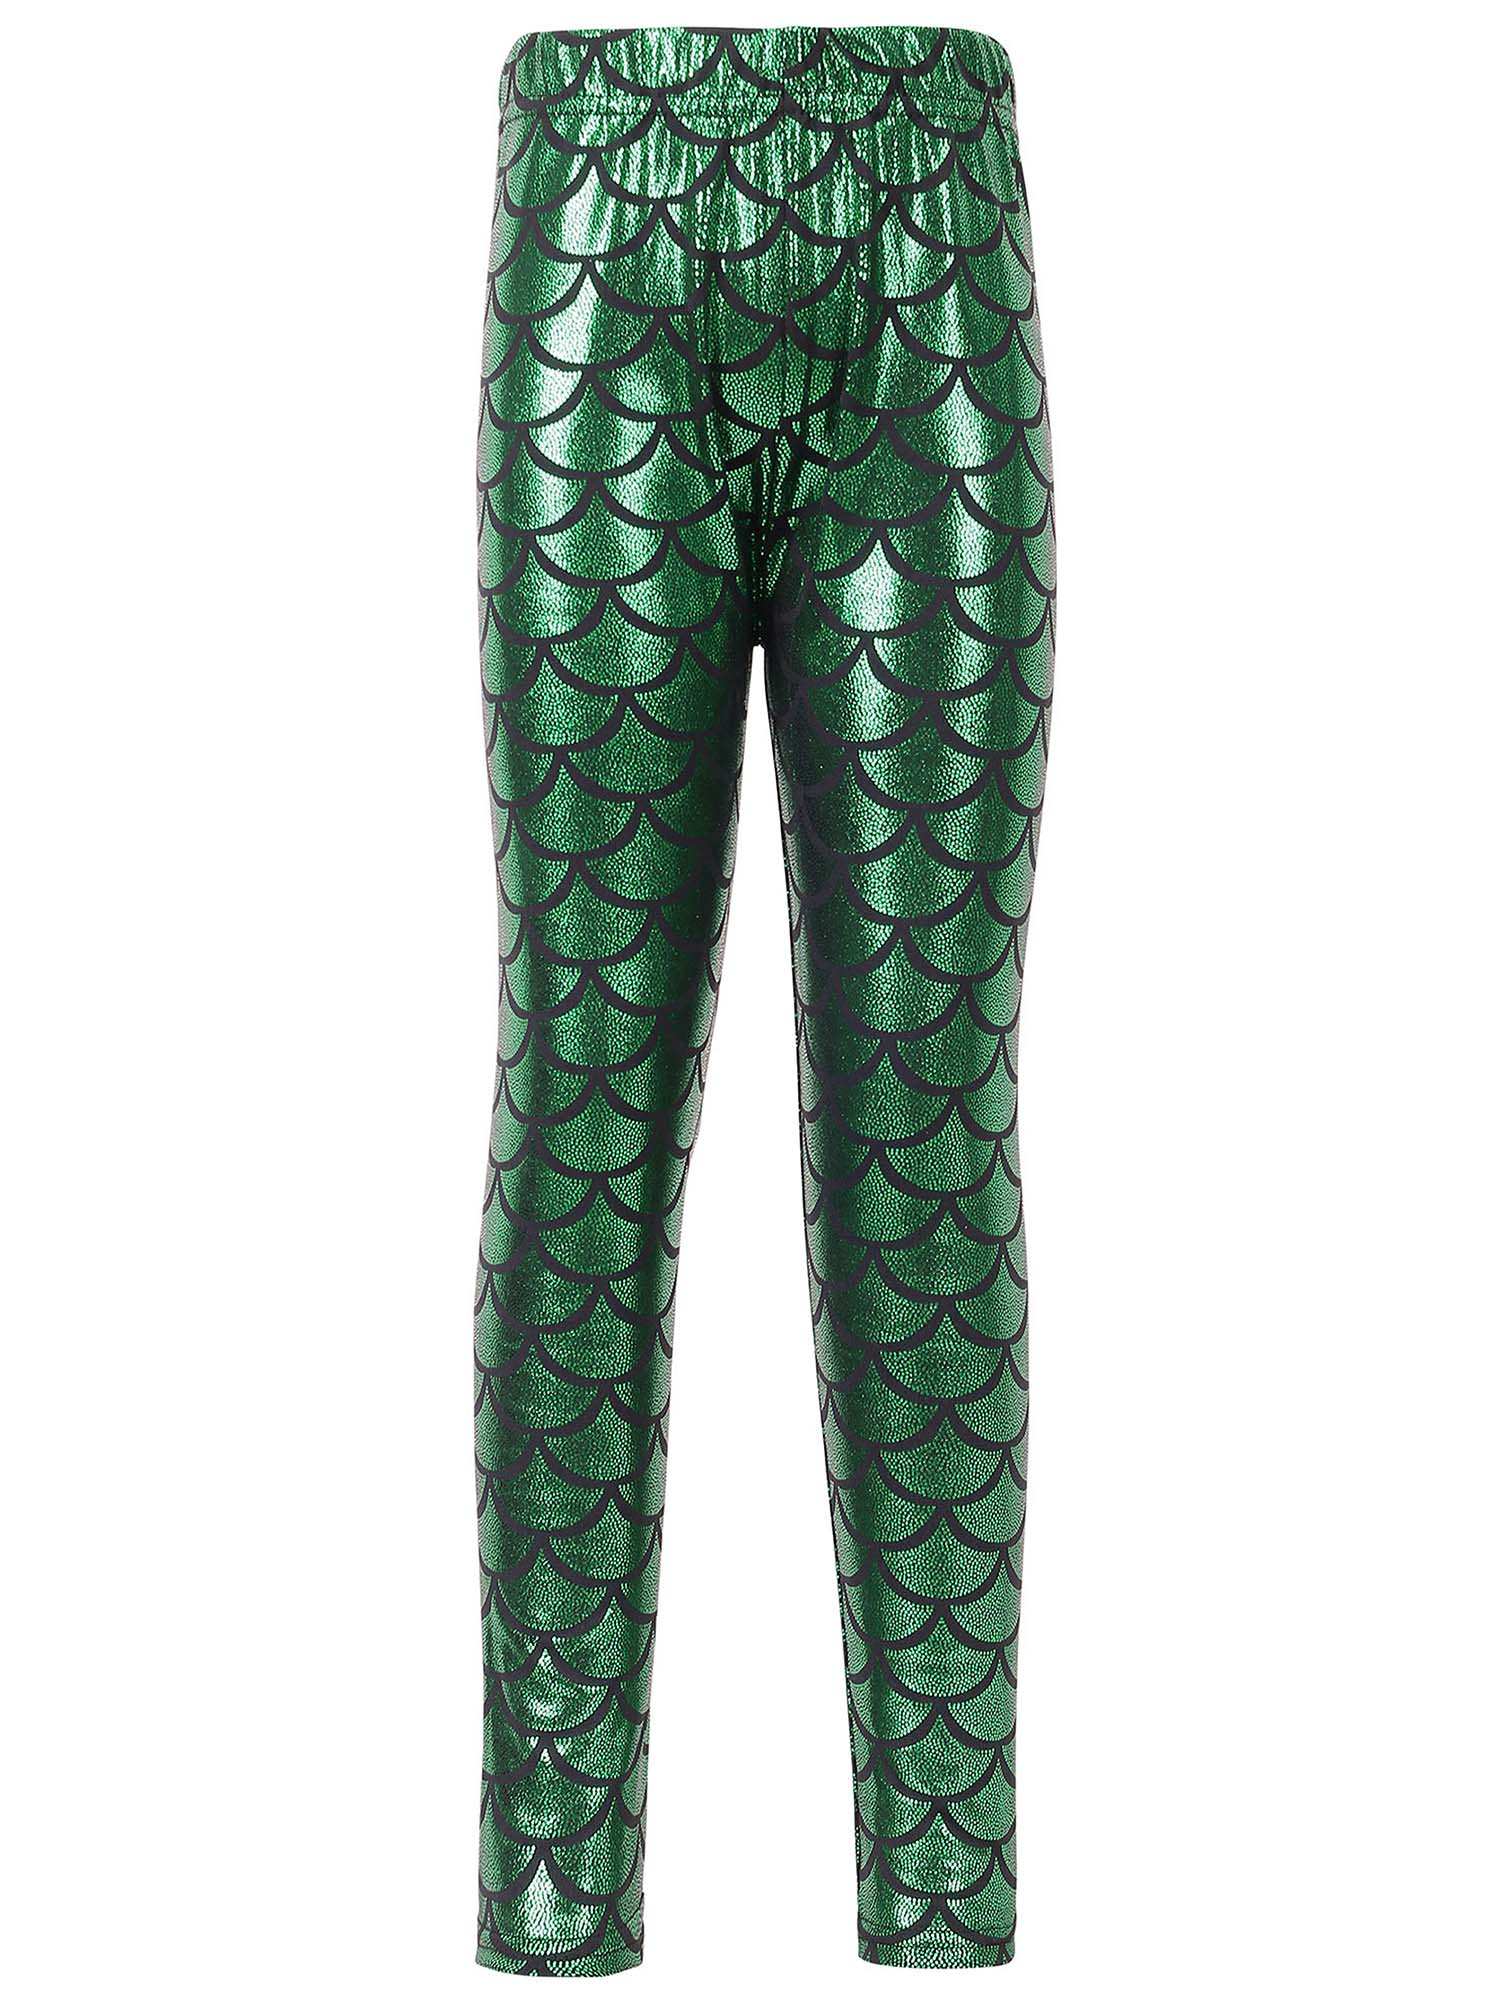 Simplicity Girls Mermaid Fish Scale Print Full Length Leggings Pants, Green, S